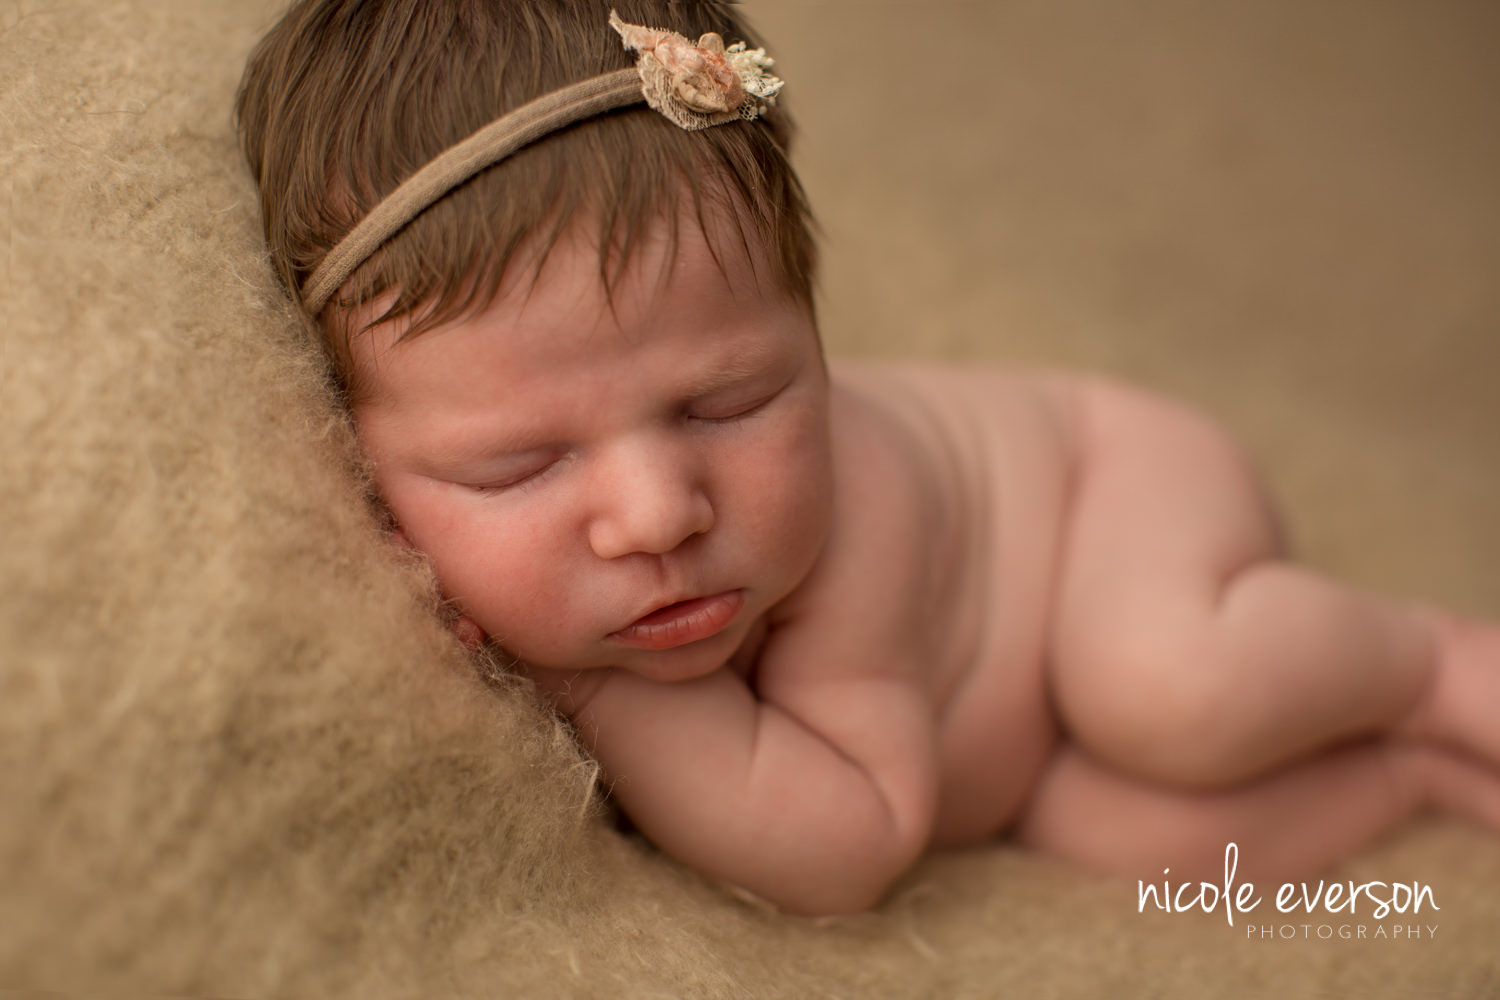 Dothan Al newborn photographer Nicole Everson Photography